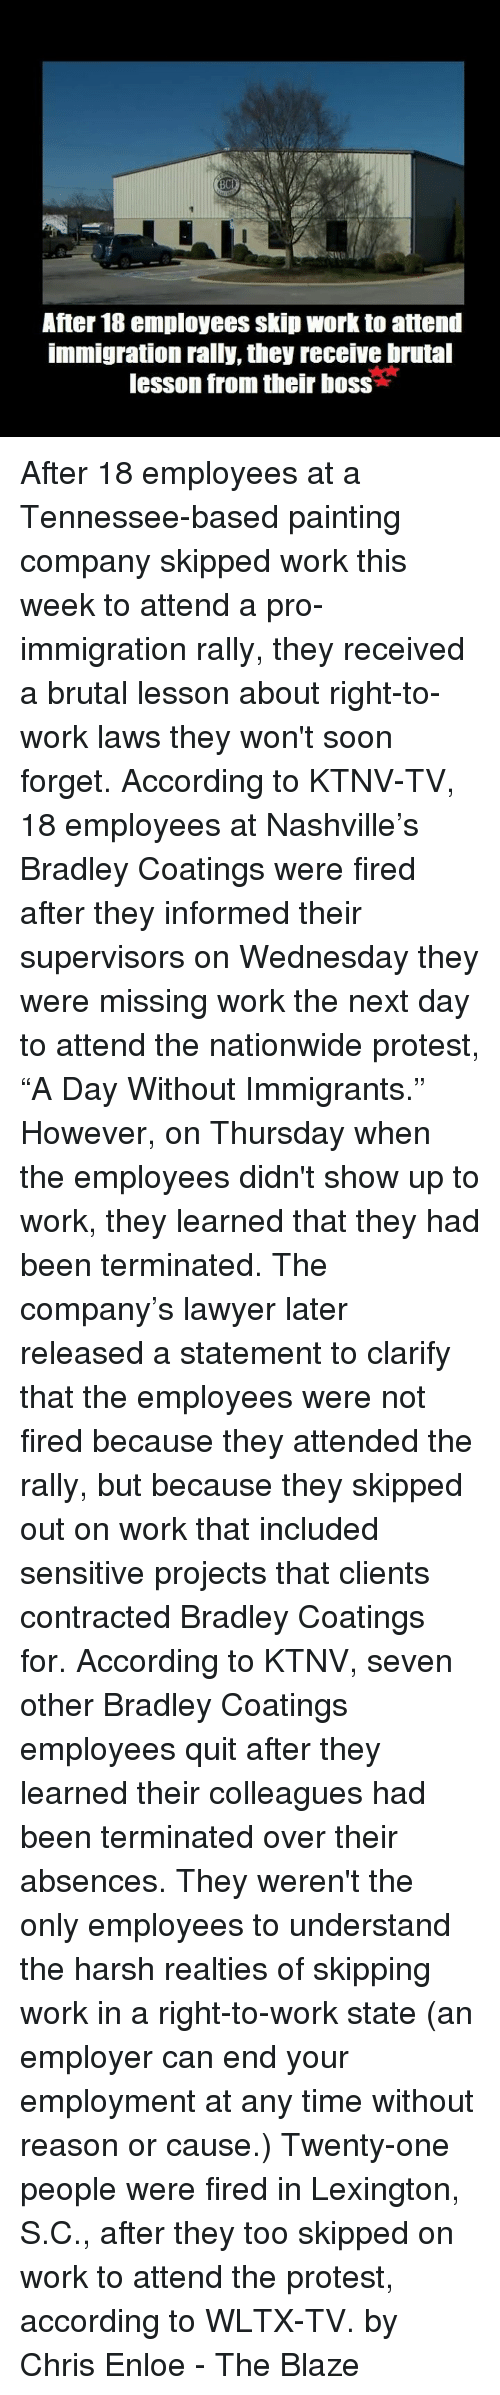 """Lawyer, Memes, and Nationwide: After 18 employees skip work to attend  immigration rally, they receive brutal  lesson from their boss After 18 employees at a Tennessee-based painting company skipped work this week to attend a pro-immigration rally, they received a brutal lesson about right-to-work laws they won't soon forget.  According to KTNV-TV, 18 employees at Nashville's Bradley Coatings were fired after they informed their supervisors on Wednesday they were missing work the next day to attend the nationwide protest, """"A Day Without Immigrants.""""  However, on Thursday when the employees didn't show up to work, they learned that they had been terminated.  The company's lawyer later released a statement to clarify that the employees were not fired because they attended the rally, but because they skipped out on work that included sensitive projects that clients contracted Bradley Coatings for.  According to KTNV, seven other Bradley Coatings employees quit after they learned their colleagues had been terminated over their absences.  They weren't the only employees to understand the harsh realties of skipping work in a right-to-work state (an employer can end your employment at any time without reason or cause.)   Twenty-one people were fired in Lexington, S.C., after they too skipped on work to attend the protest, according to WLTX-TV.  by Chris Enloe - The Blaze"""